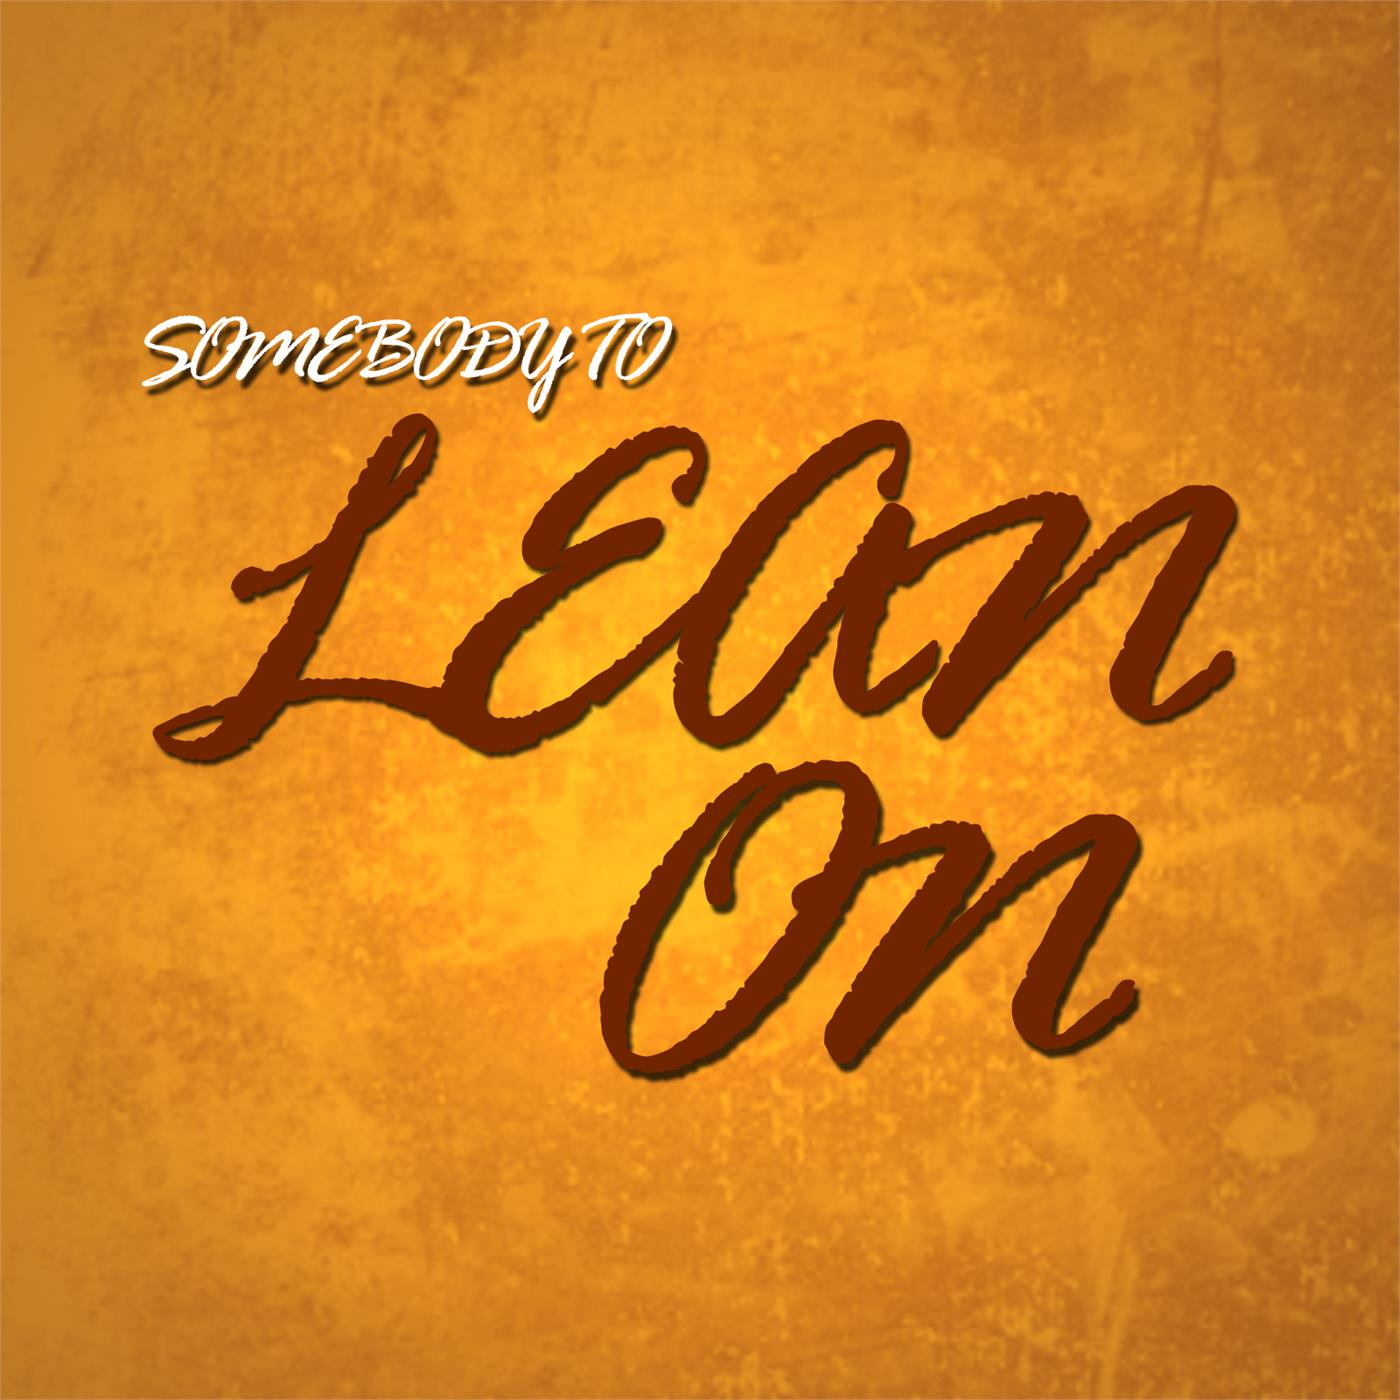 Somebody To Lean On